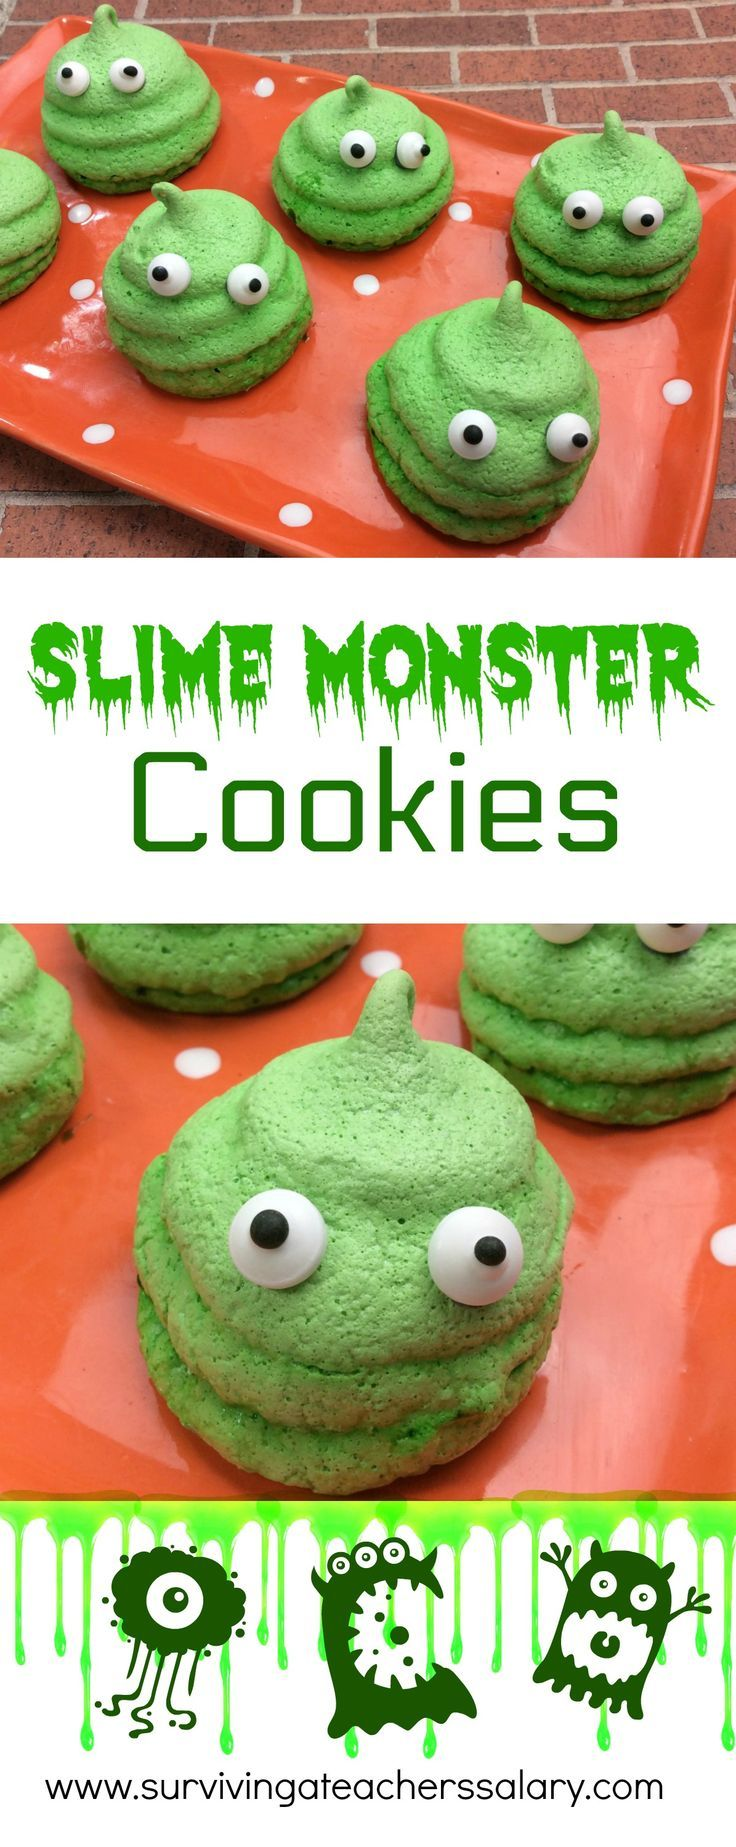 Slime is all the rage and these monster Slime Cookies will knock your socks off! Kids will go crazy over this easy recipe. Make them for classroom parties, tween parties, Halloween parties, or just grab your kids and get baking in the kitchen!